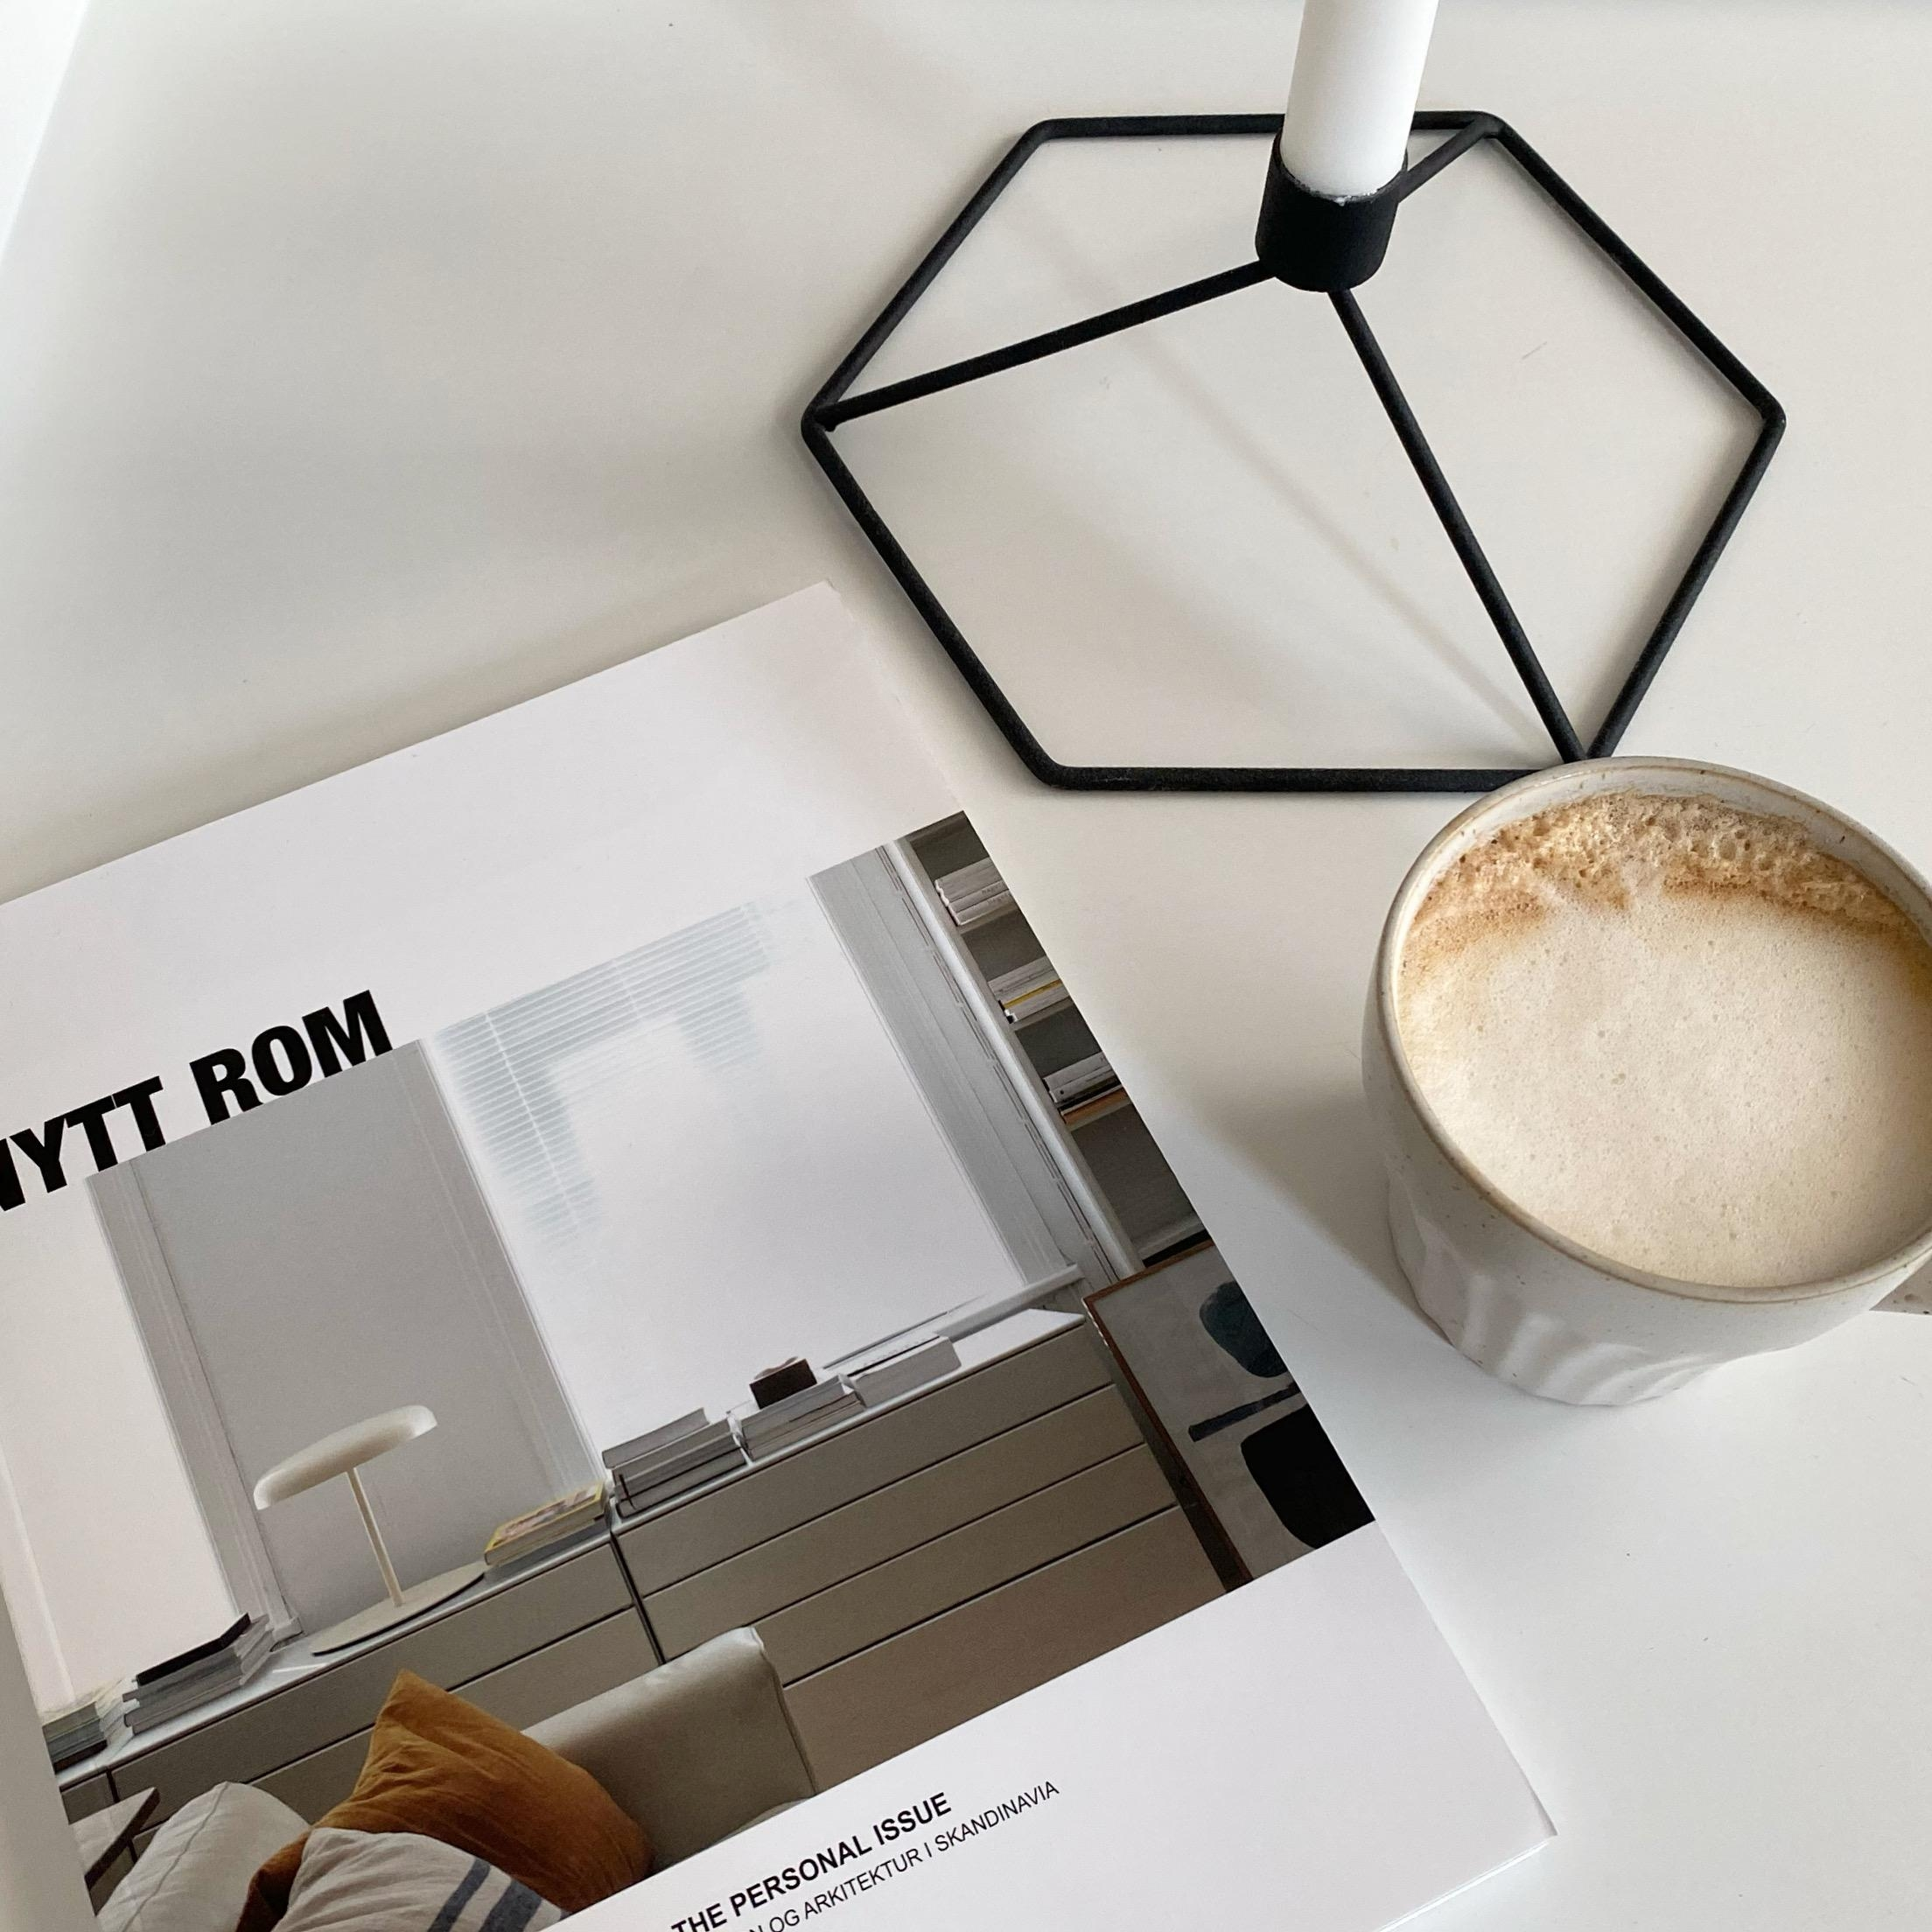 Coffee Time #nyttrom #magazine #coffeetime